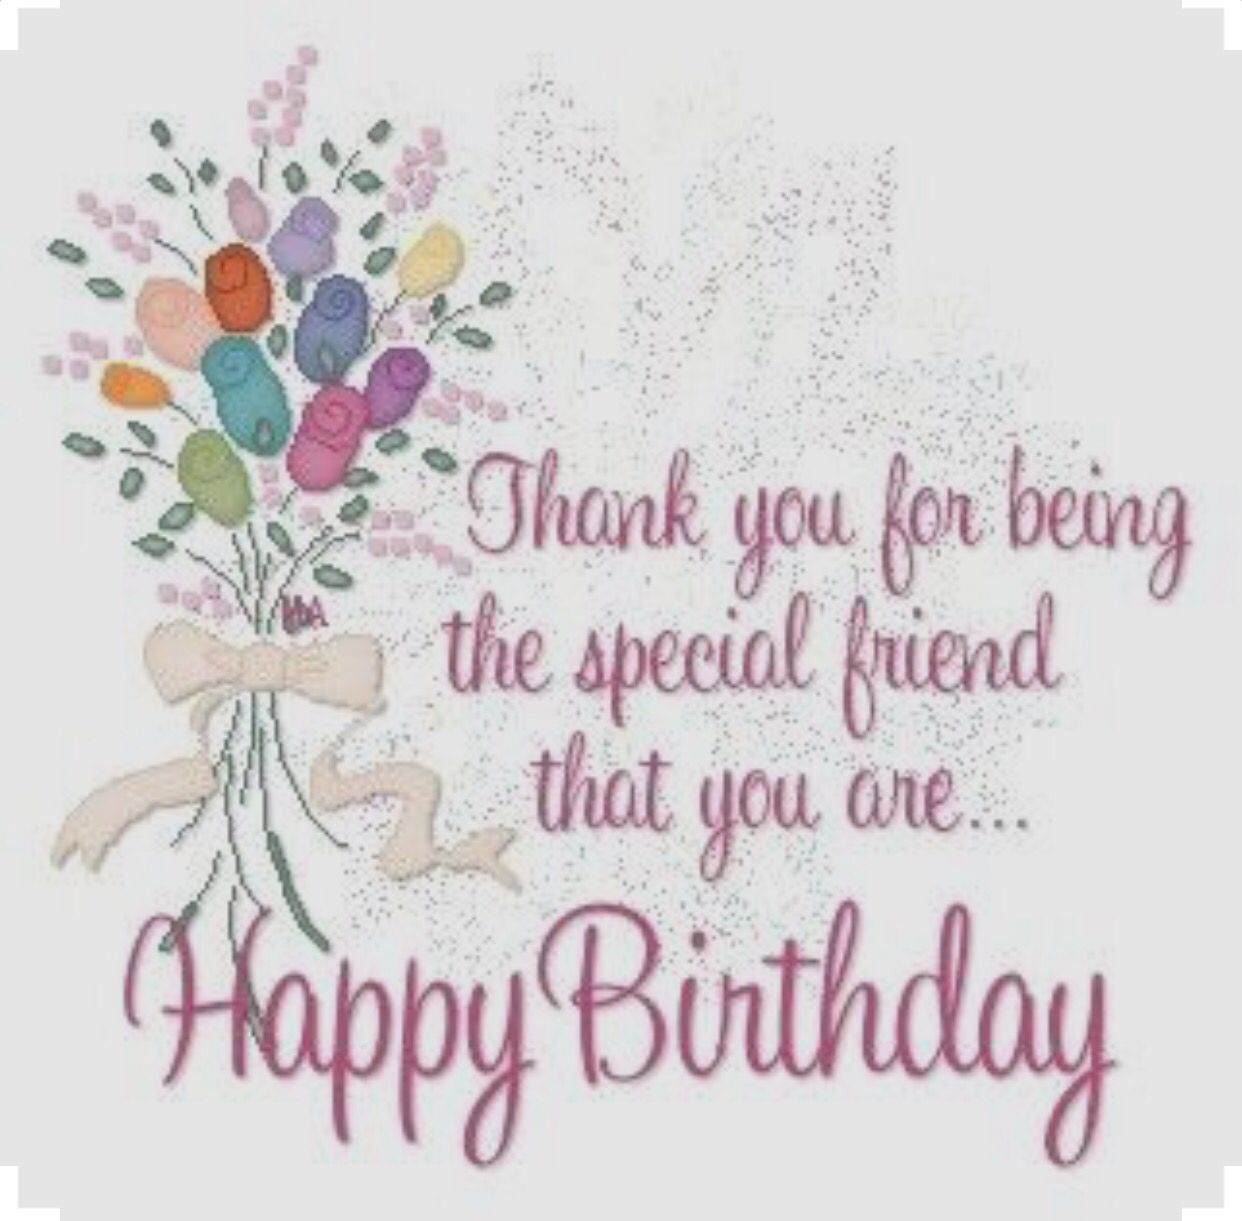 Hb special friend friends pinterest explore short birthday wishes and more kristyandbryce Choice Image